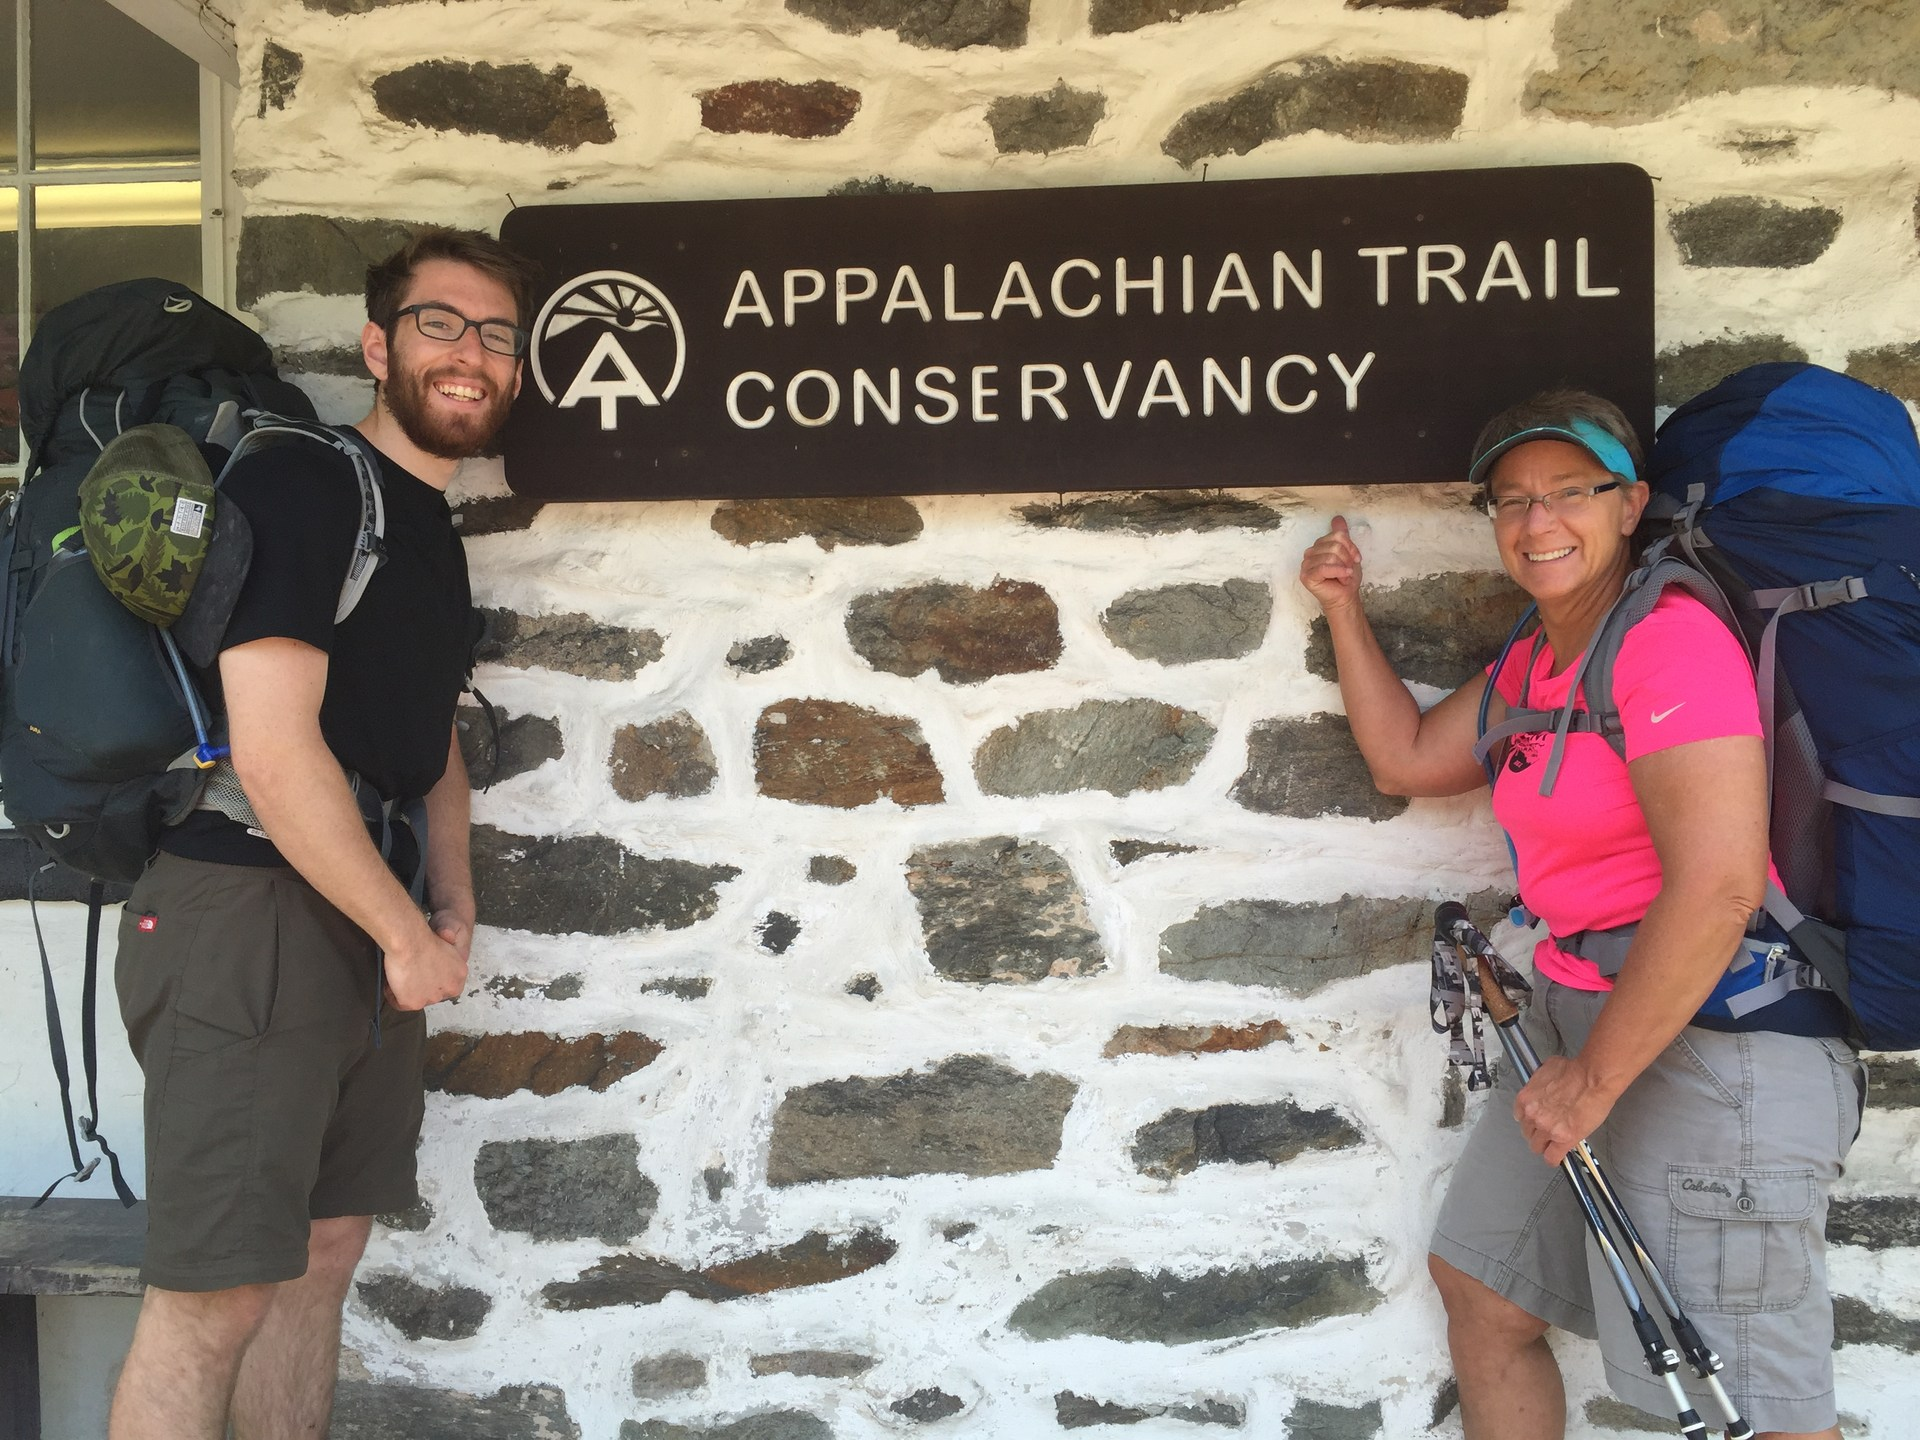 My nephew Brooks helped me start hiking the Appalachian Trail; I've walked about 10% so far.